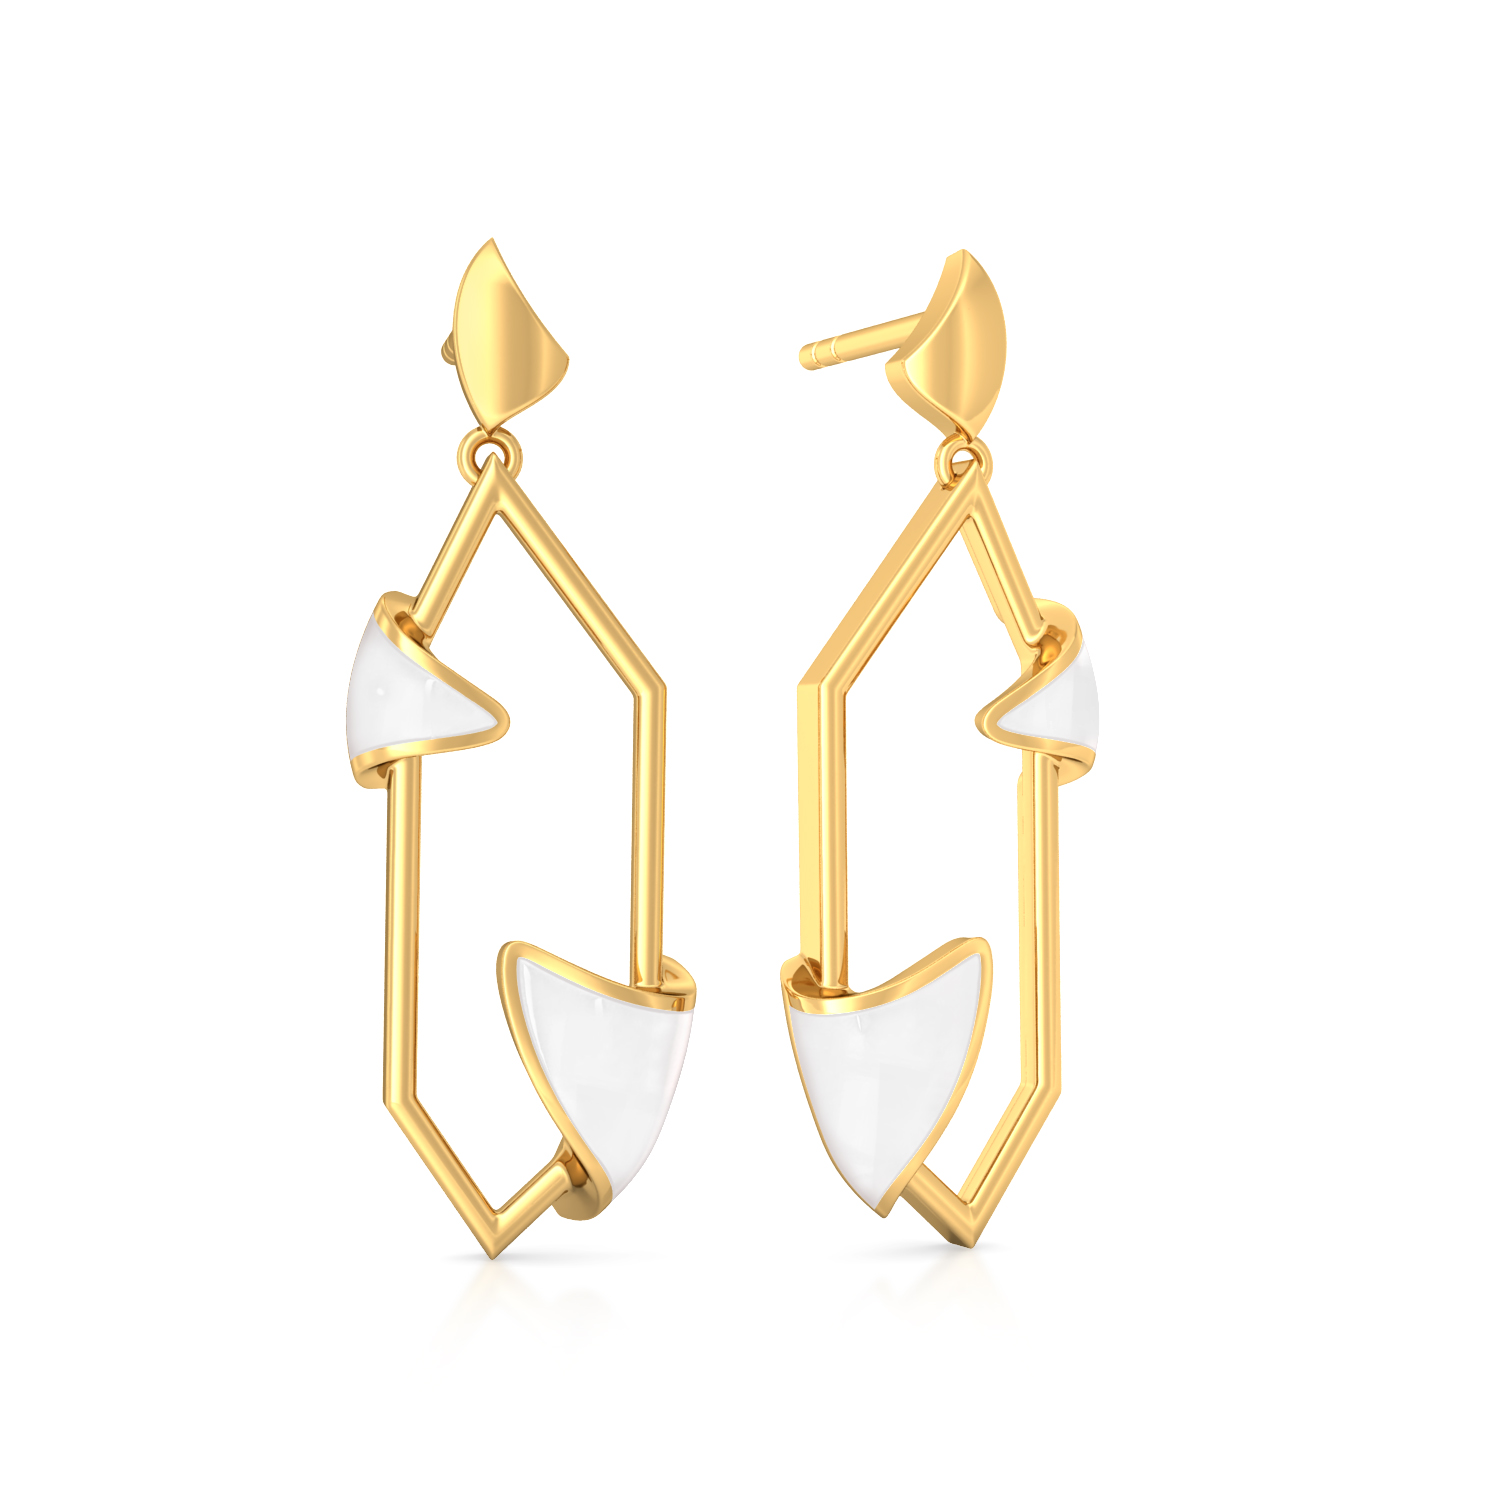 The Polygon Ruse Gold Earrings